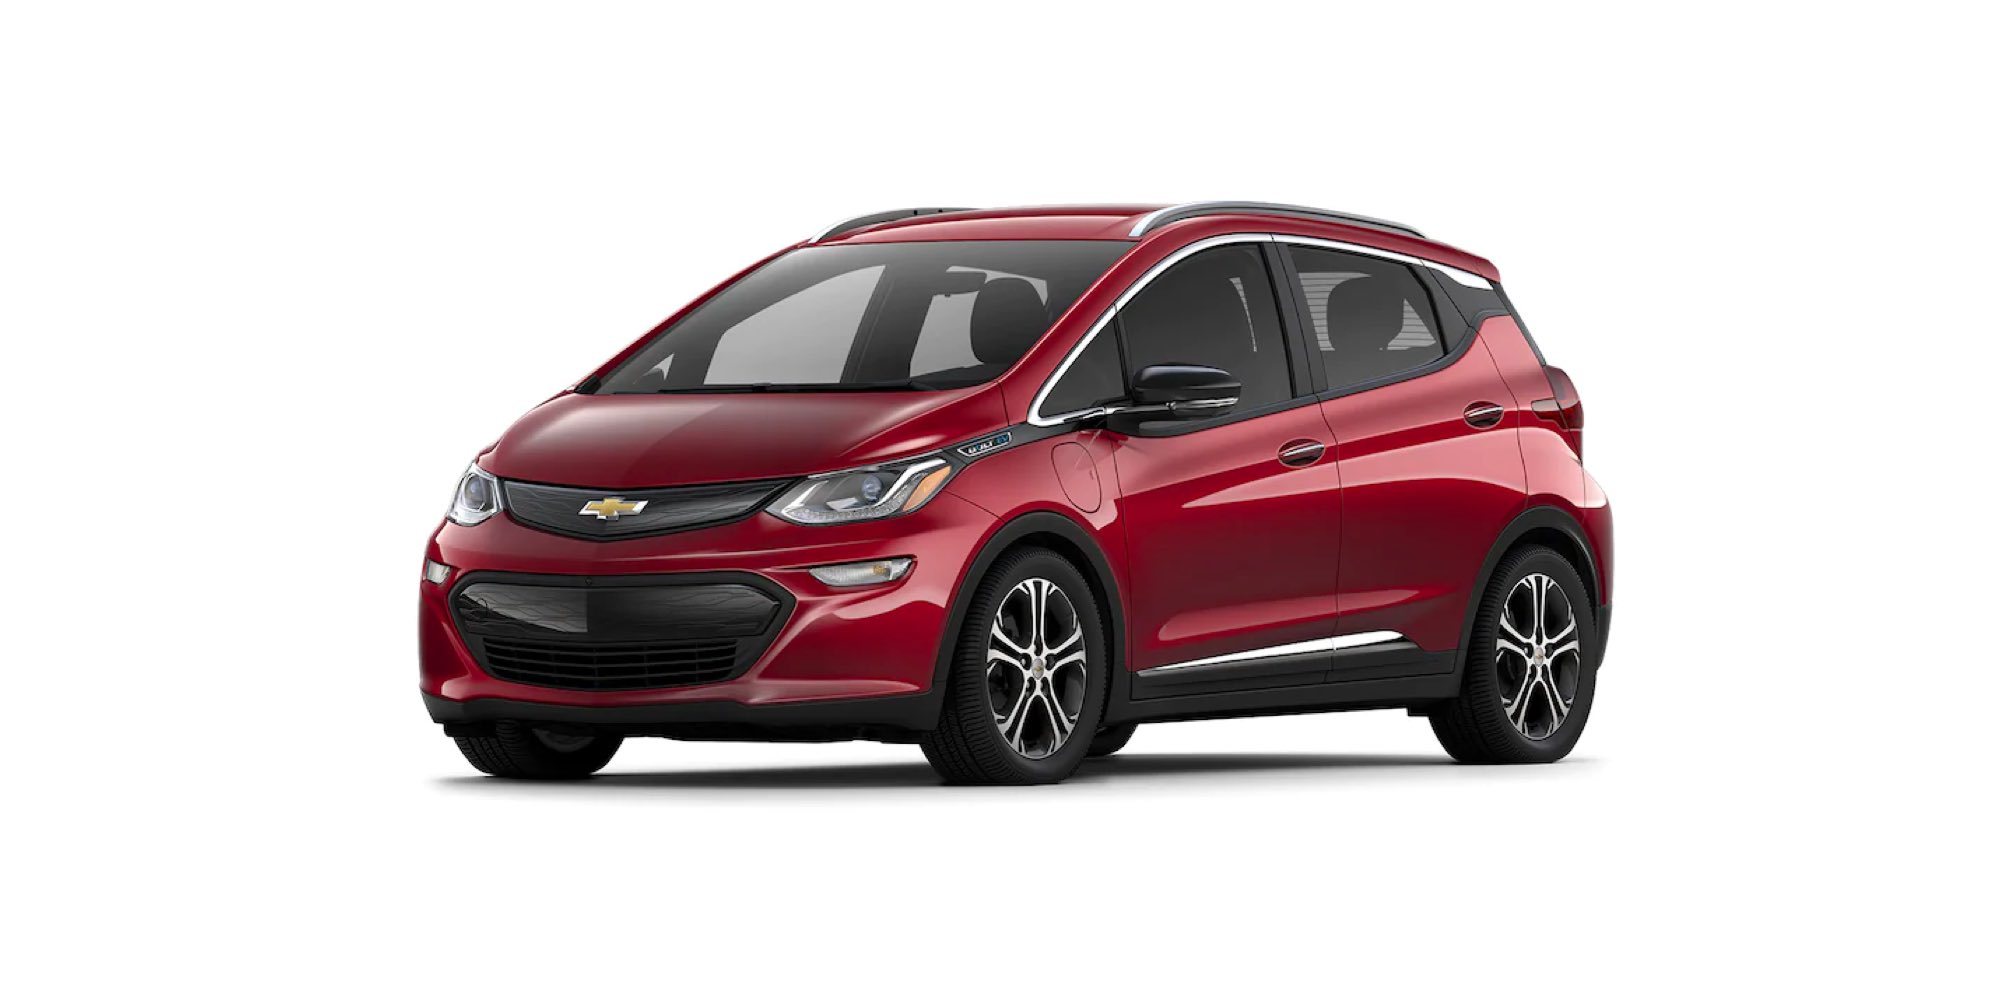 2021 Chevy Bolt in Cajun Red Tintcoat